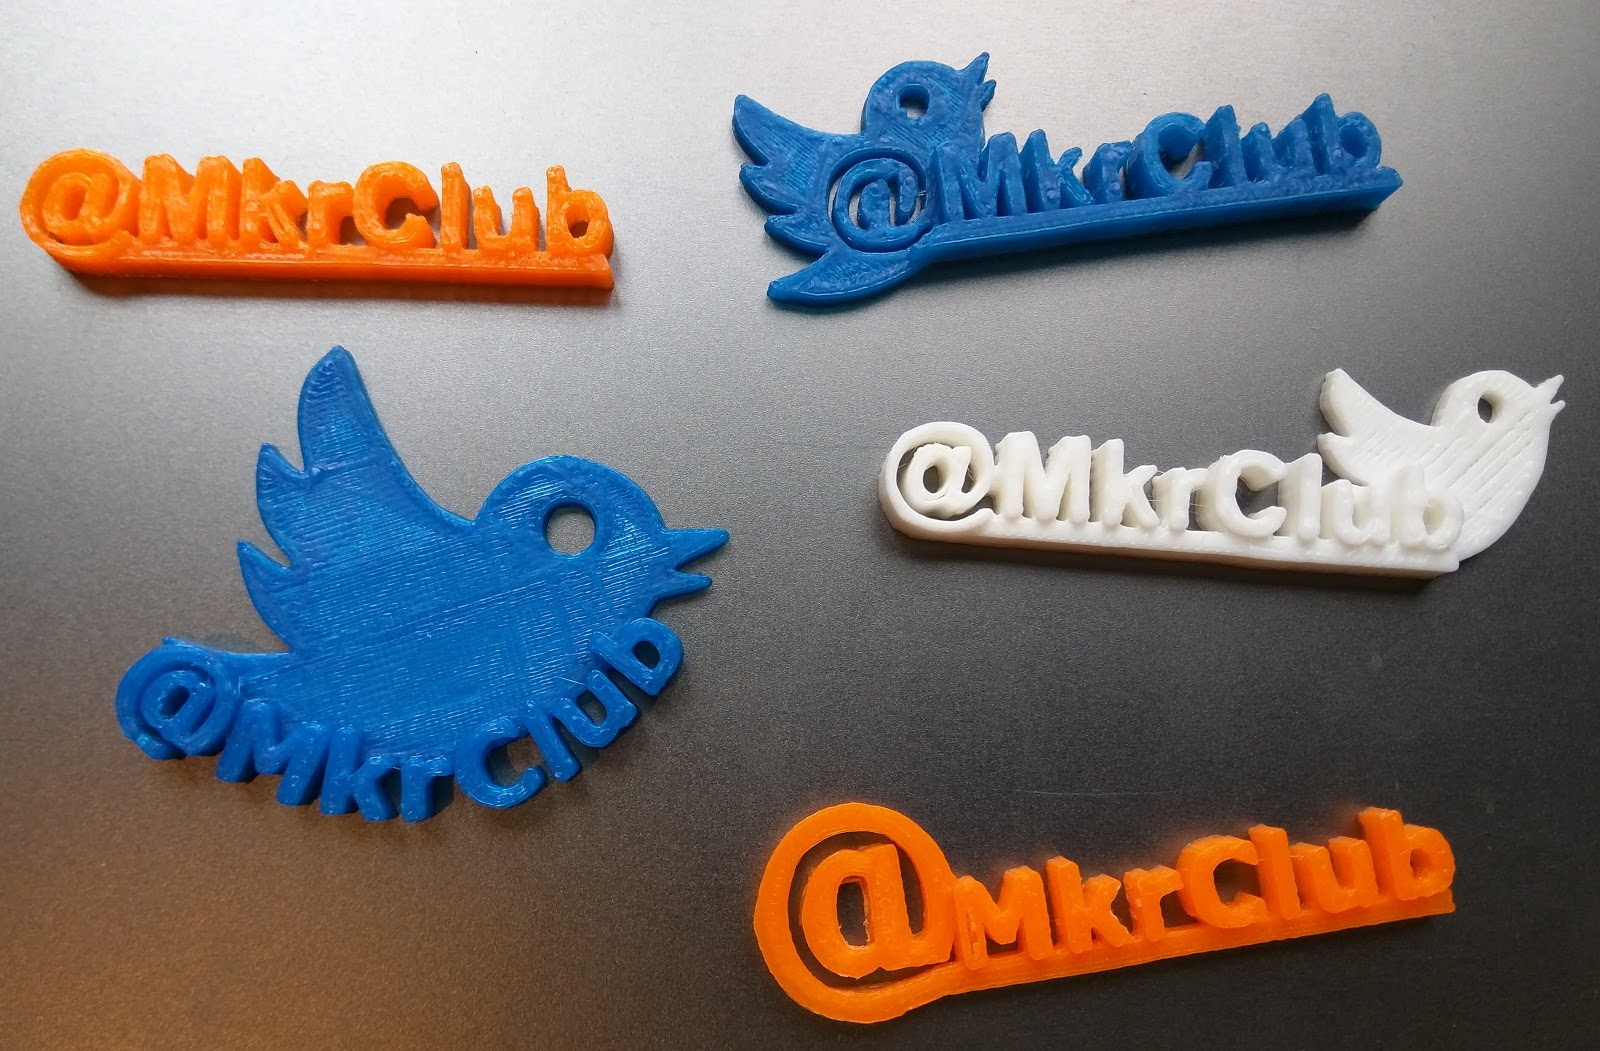 Uncategorized Printed Names maker club 5 name tag designs for 3d printing printing